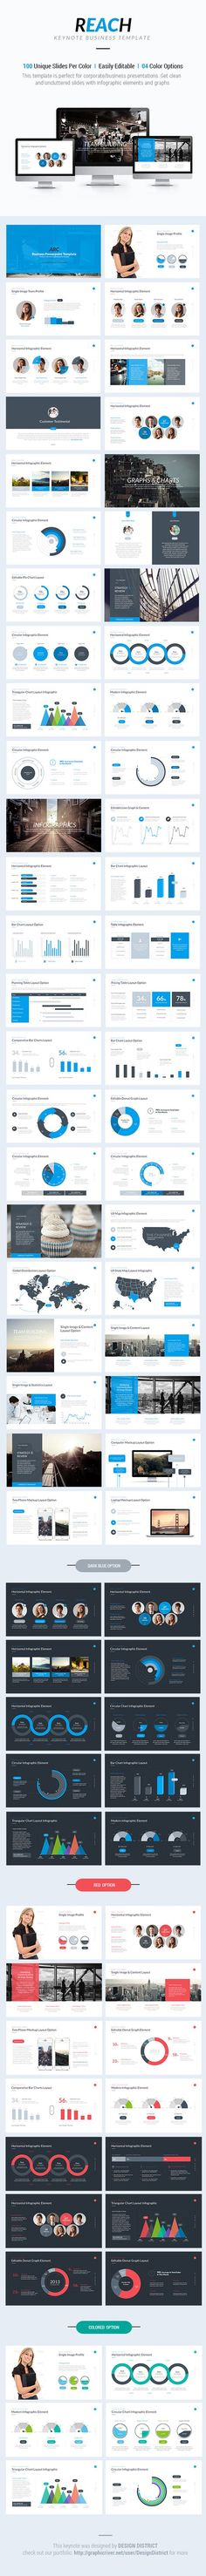 Keynote Business Template #design Download: http://graphicriver.net/item/keynote-business-template/12026704?ref=ksioks: